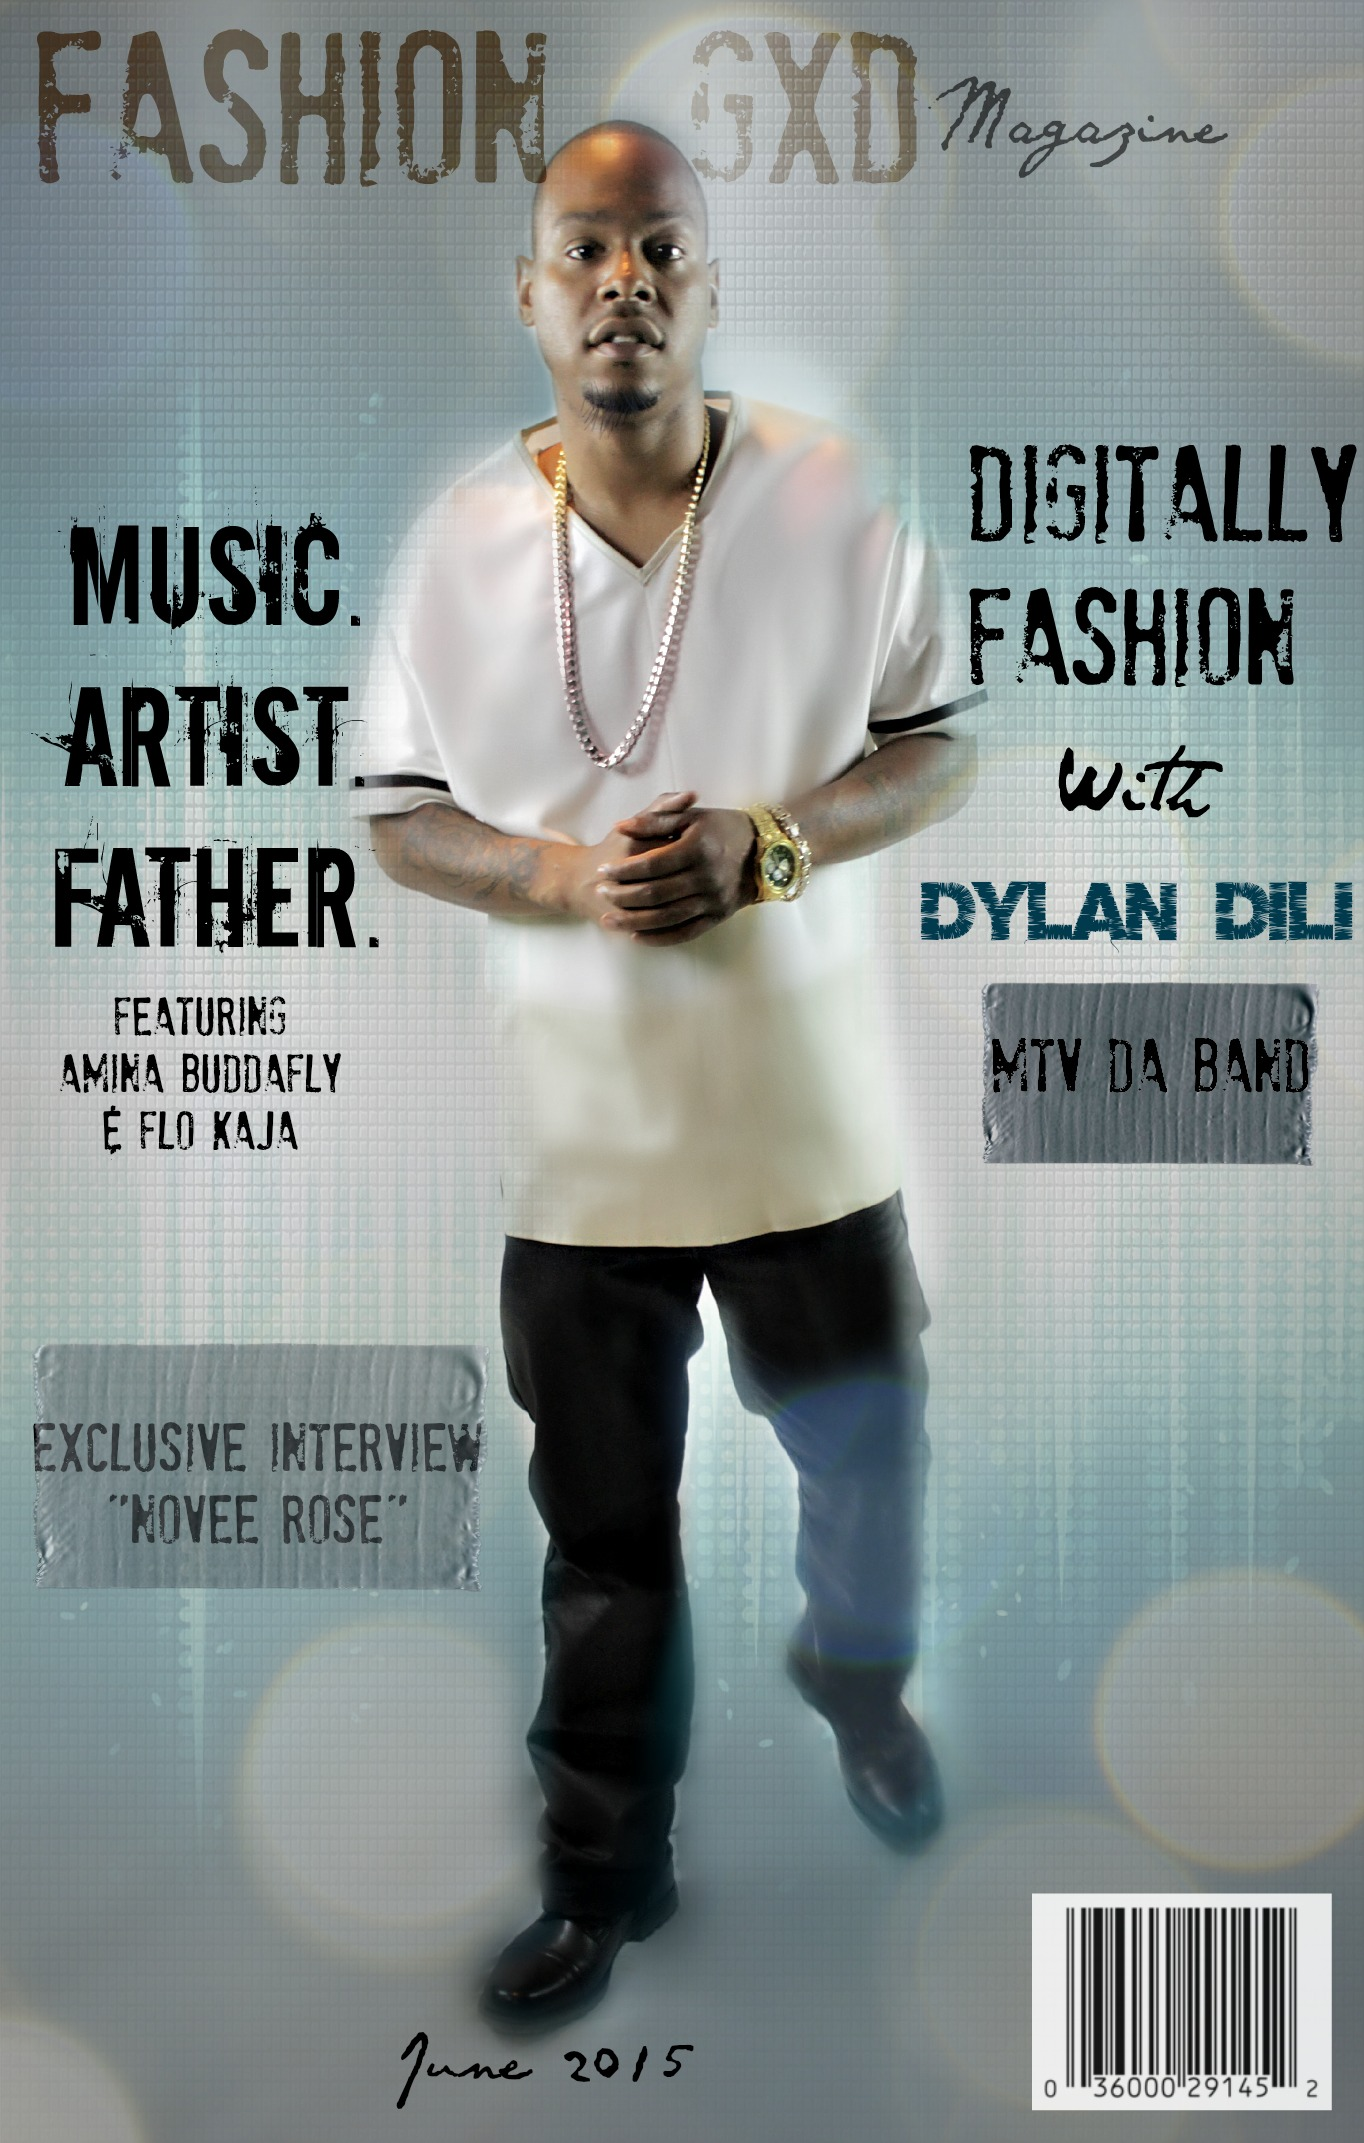 Dylan-Dili-Fashion-Gxd-Magazine-Cover.jpg